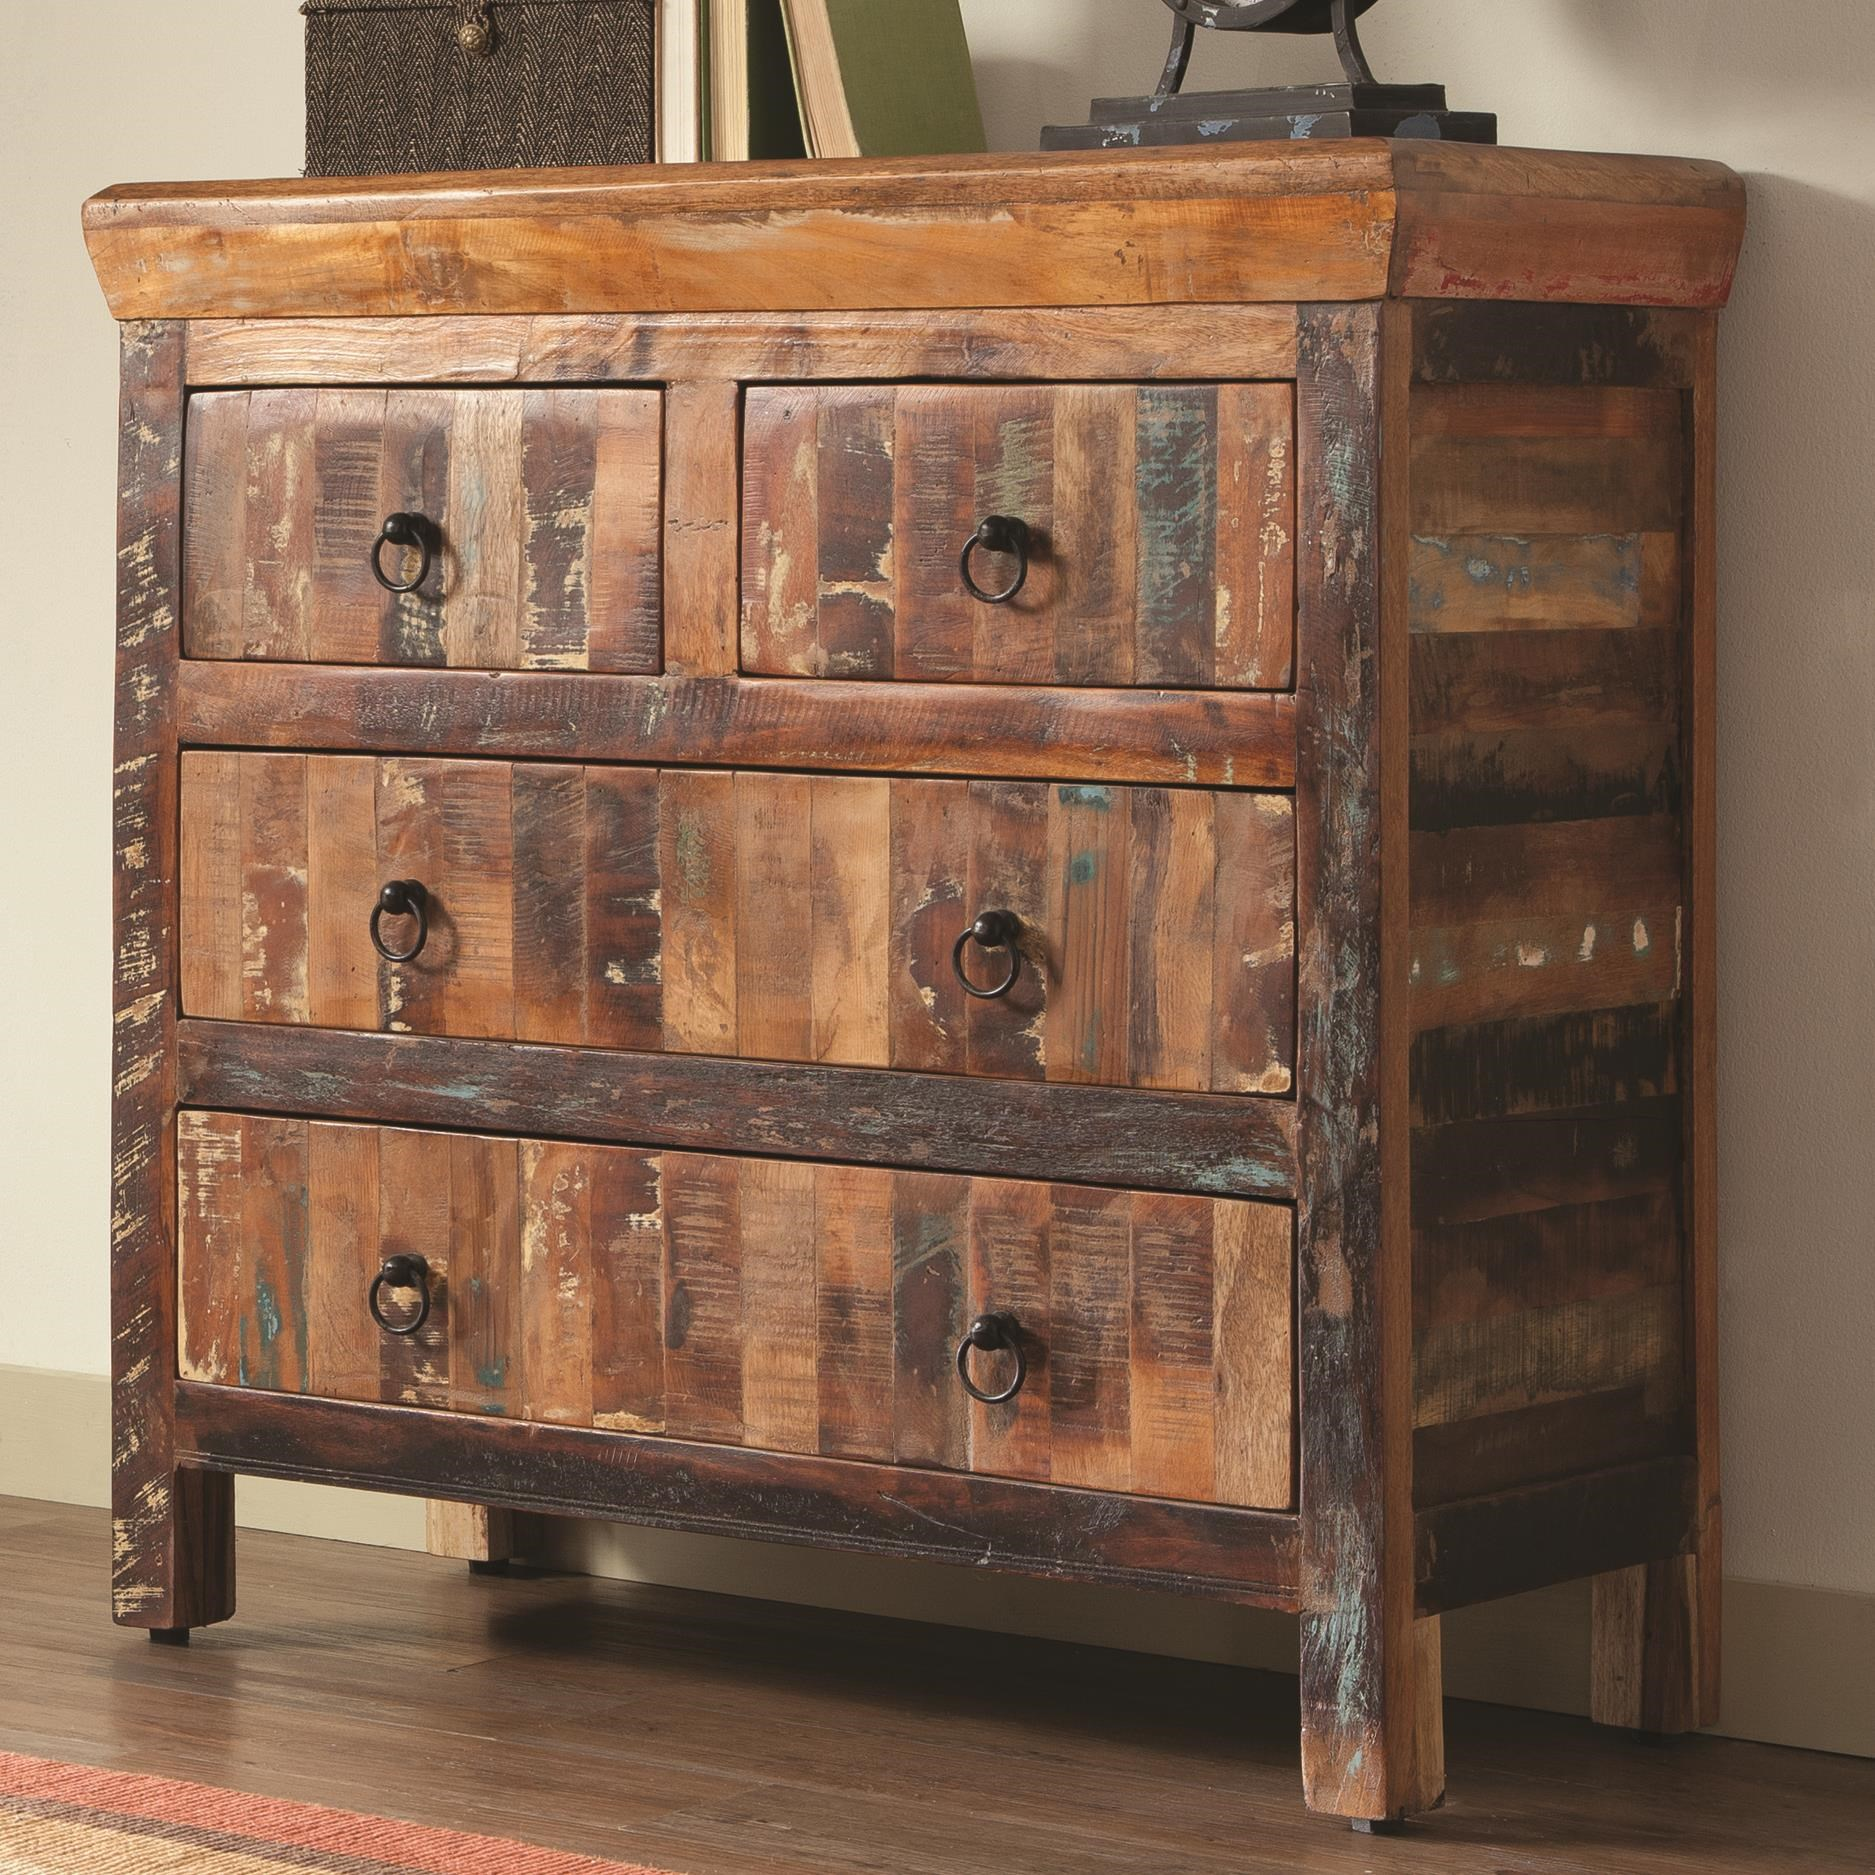 Exceptional Coaster Accent Cabinets 4 Drawer Reclaimed Wood Cabinet   Coaster Fine  Furniture